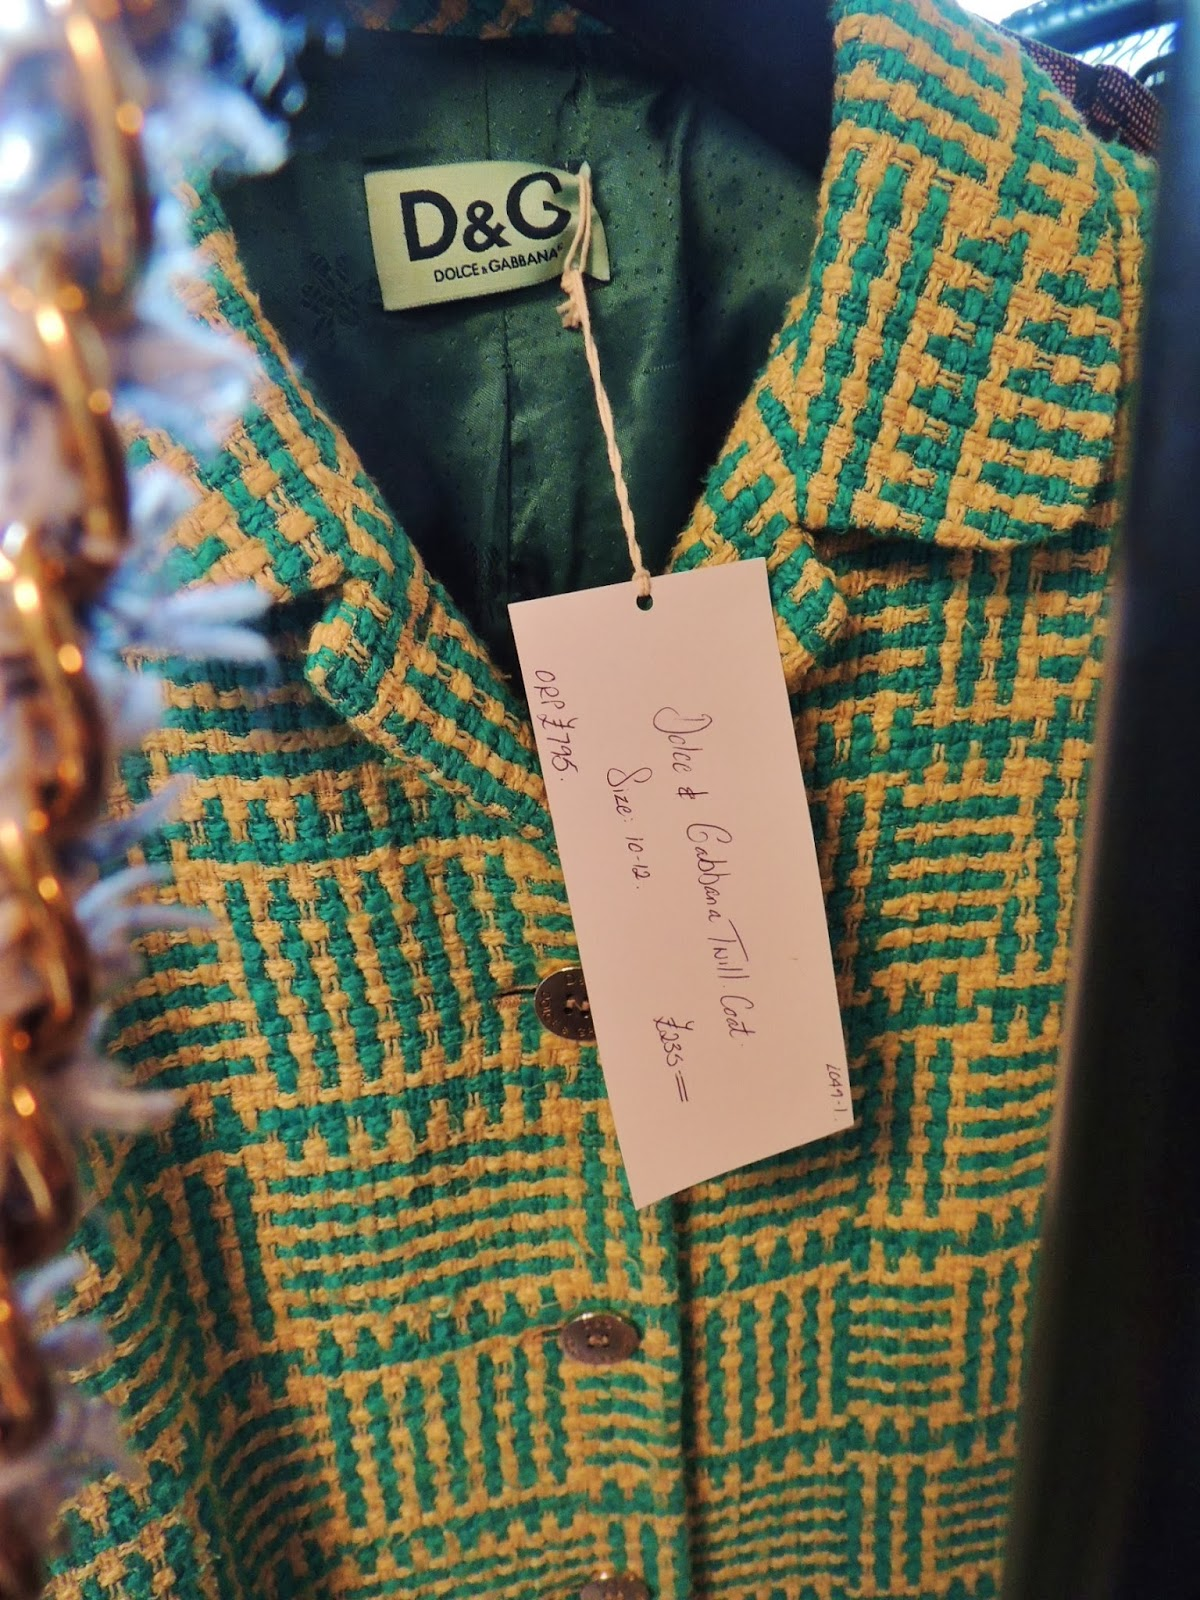 D&G twill coat in jade green and yellow